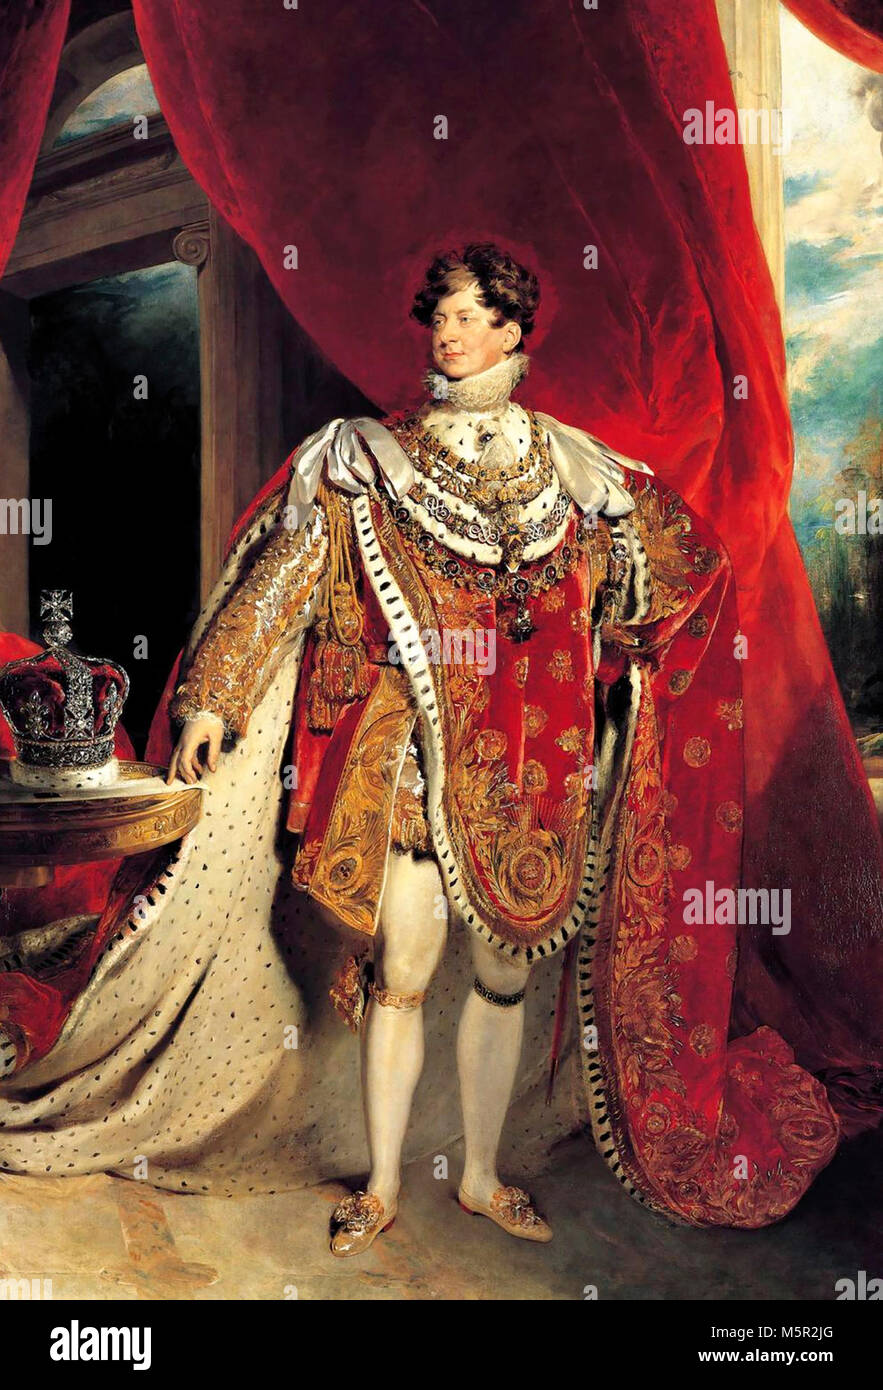 Coronation portrait of George IV - King George IV depicted wearing coronation robes and four collars of chivalric - Stock Image